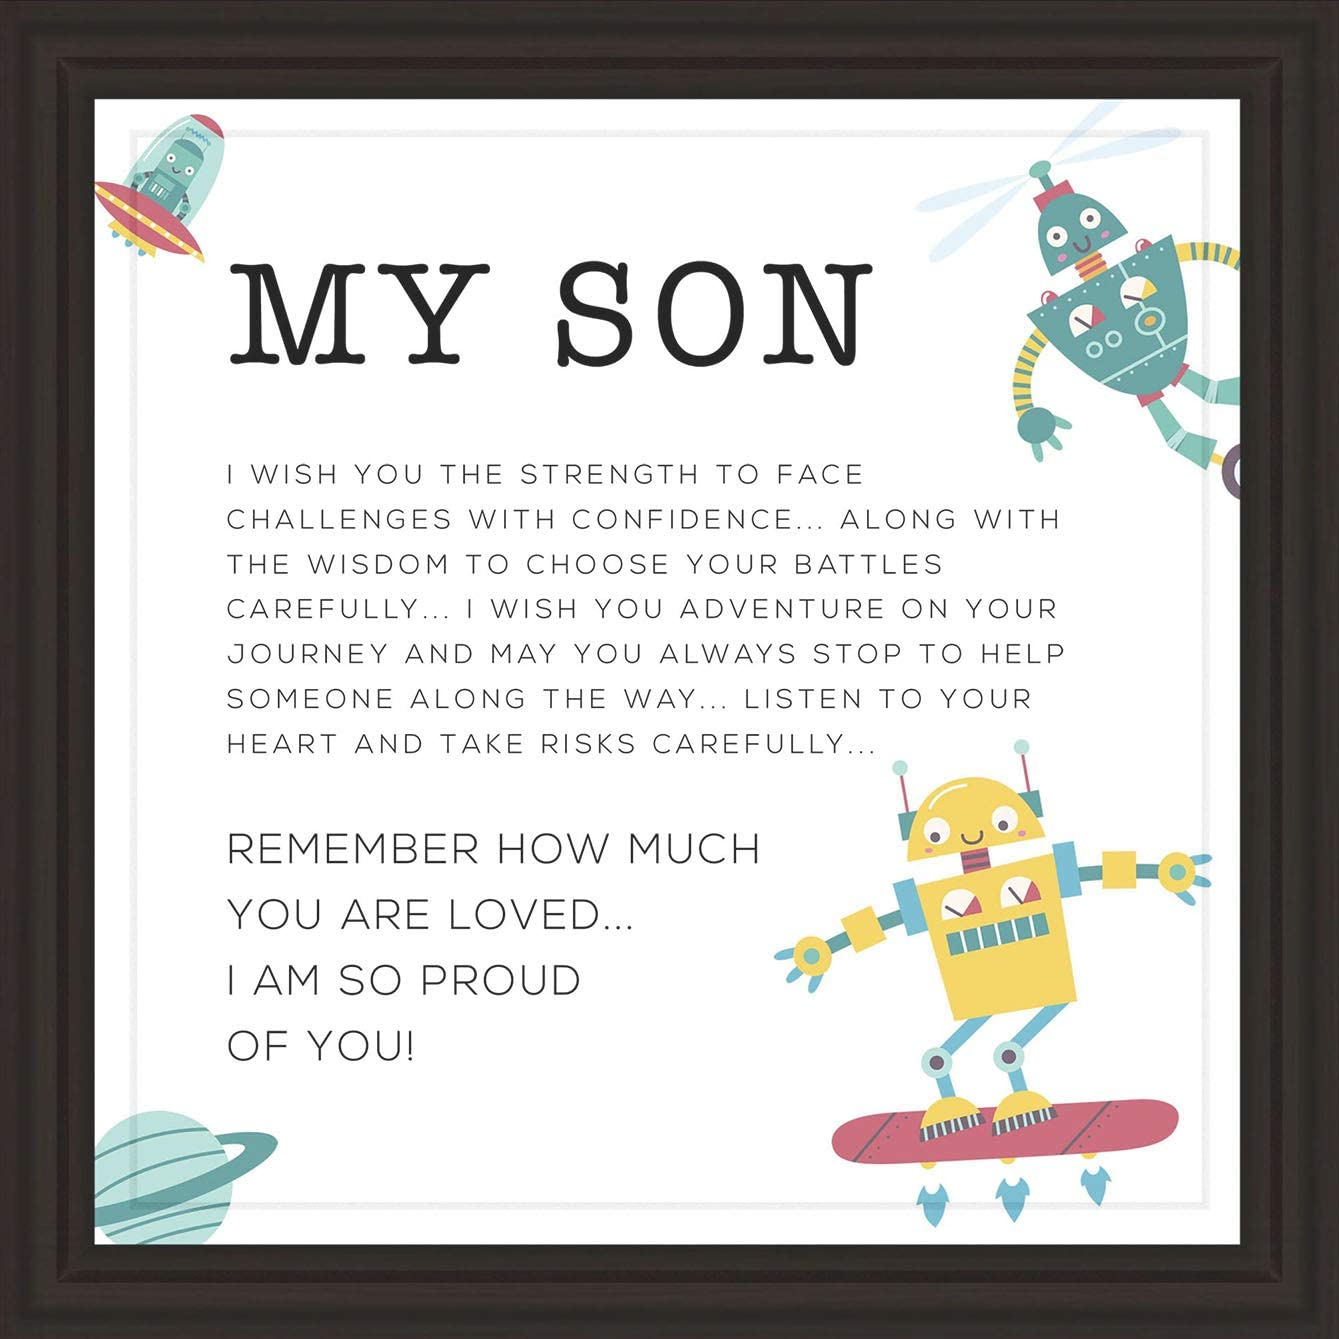 Gifts for Son   7x7 Tile Artwork   Fun Art Prints for Sons   Special Present for Room Decor   Gift for Graduation, Birthday or Any Special Occasion   Perfect for Men and Boys